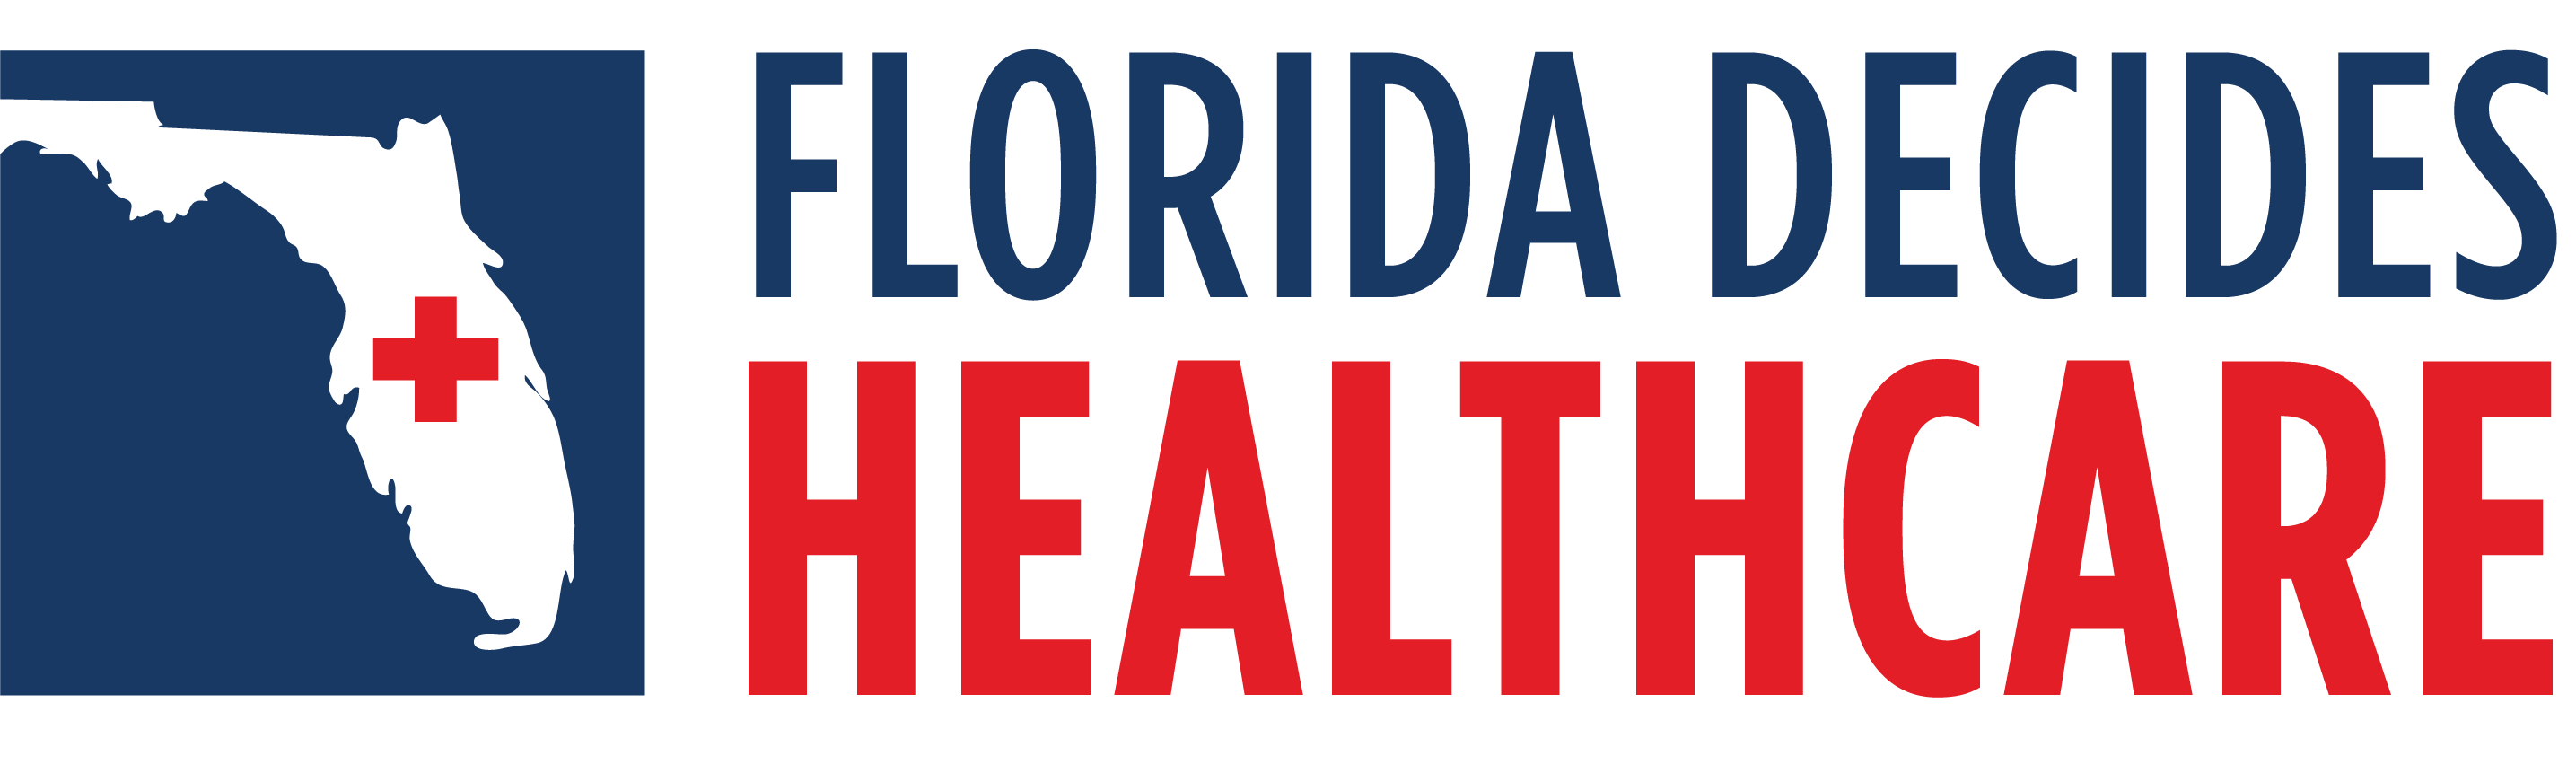 Florida Decides Healthcare